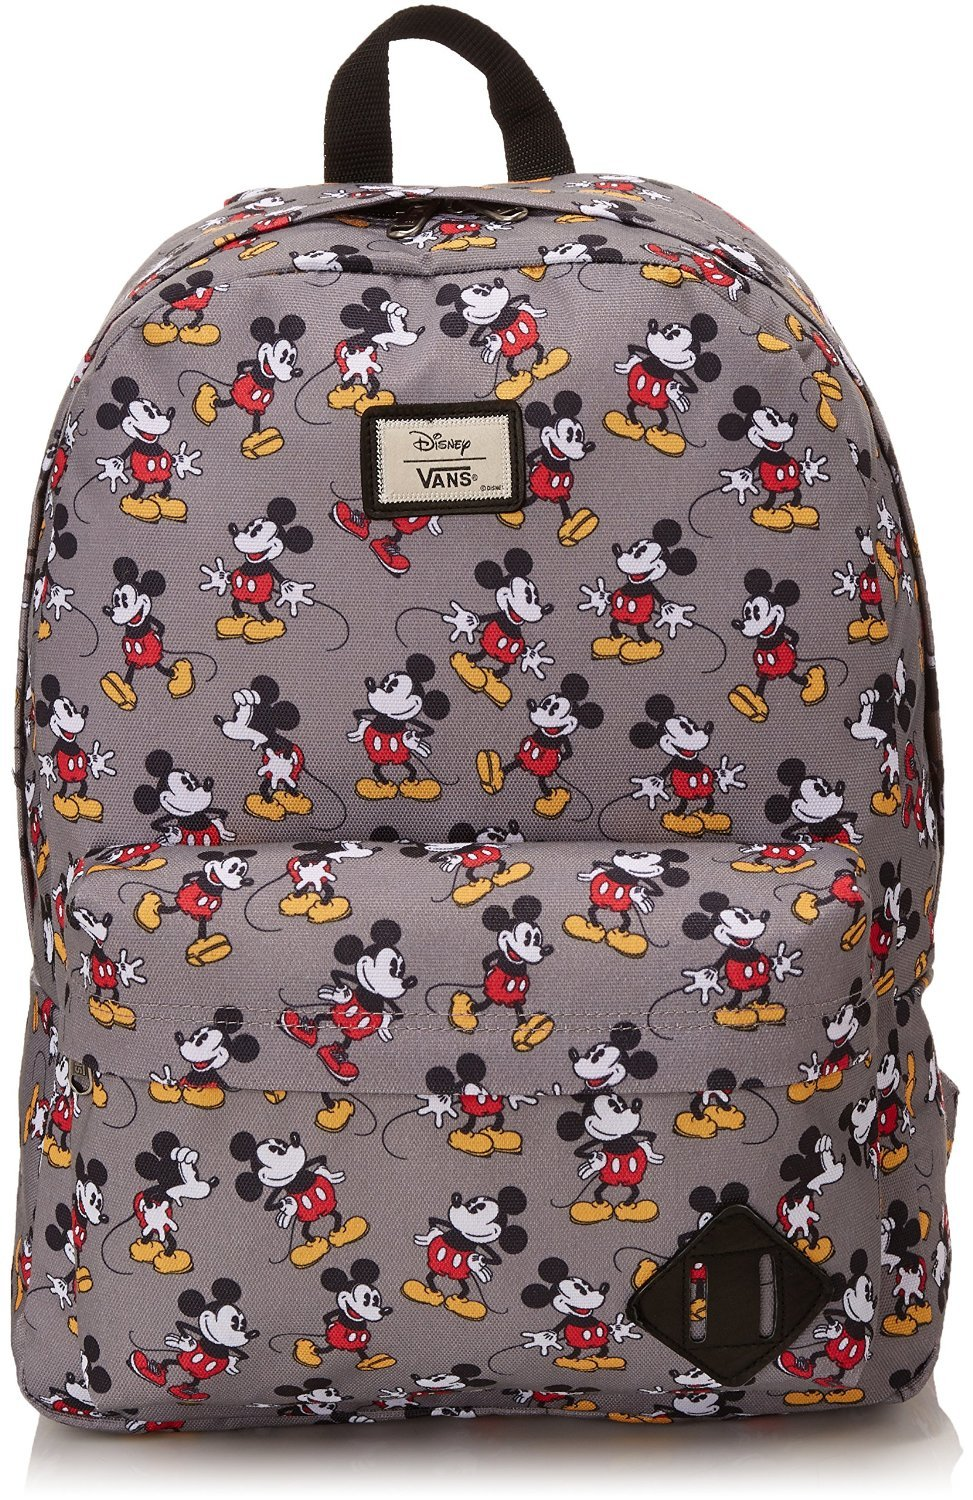 Vans recently released some very cool Disney Backpack designs I found on  Amazon. Since school is starting next month I thought these would be a  great way to ... ba1f0d721b3a